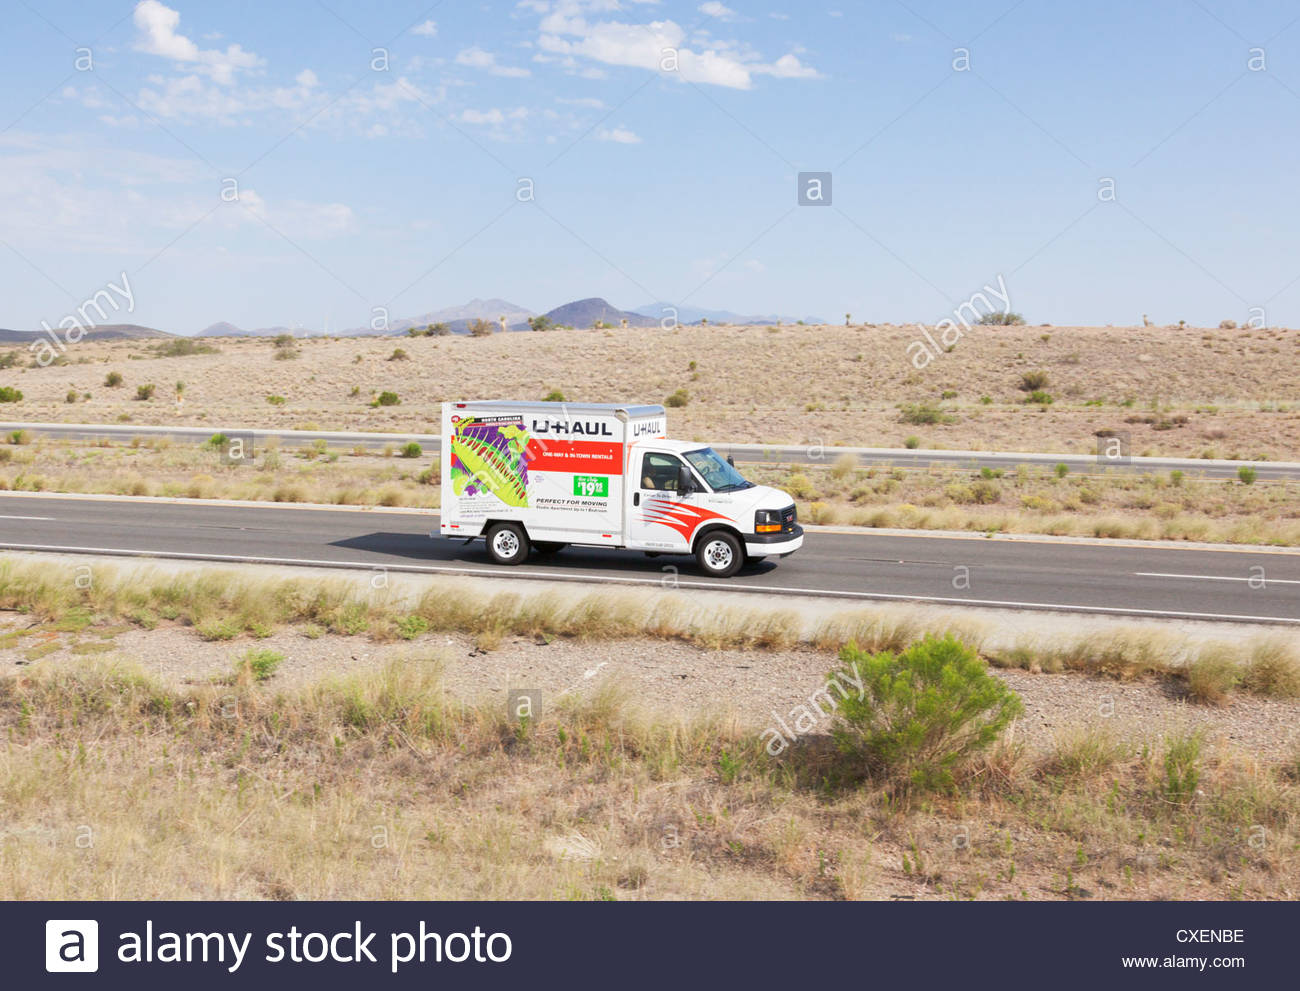 Small U-Haul Truck I-10 southeast Arizona driver passenger visible - Stock Image